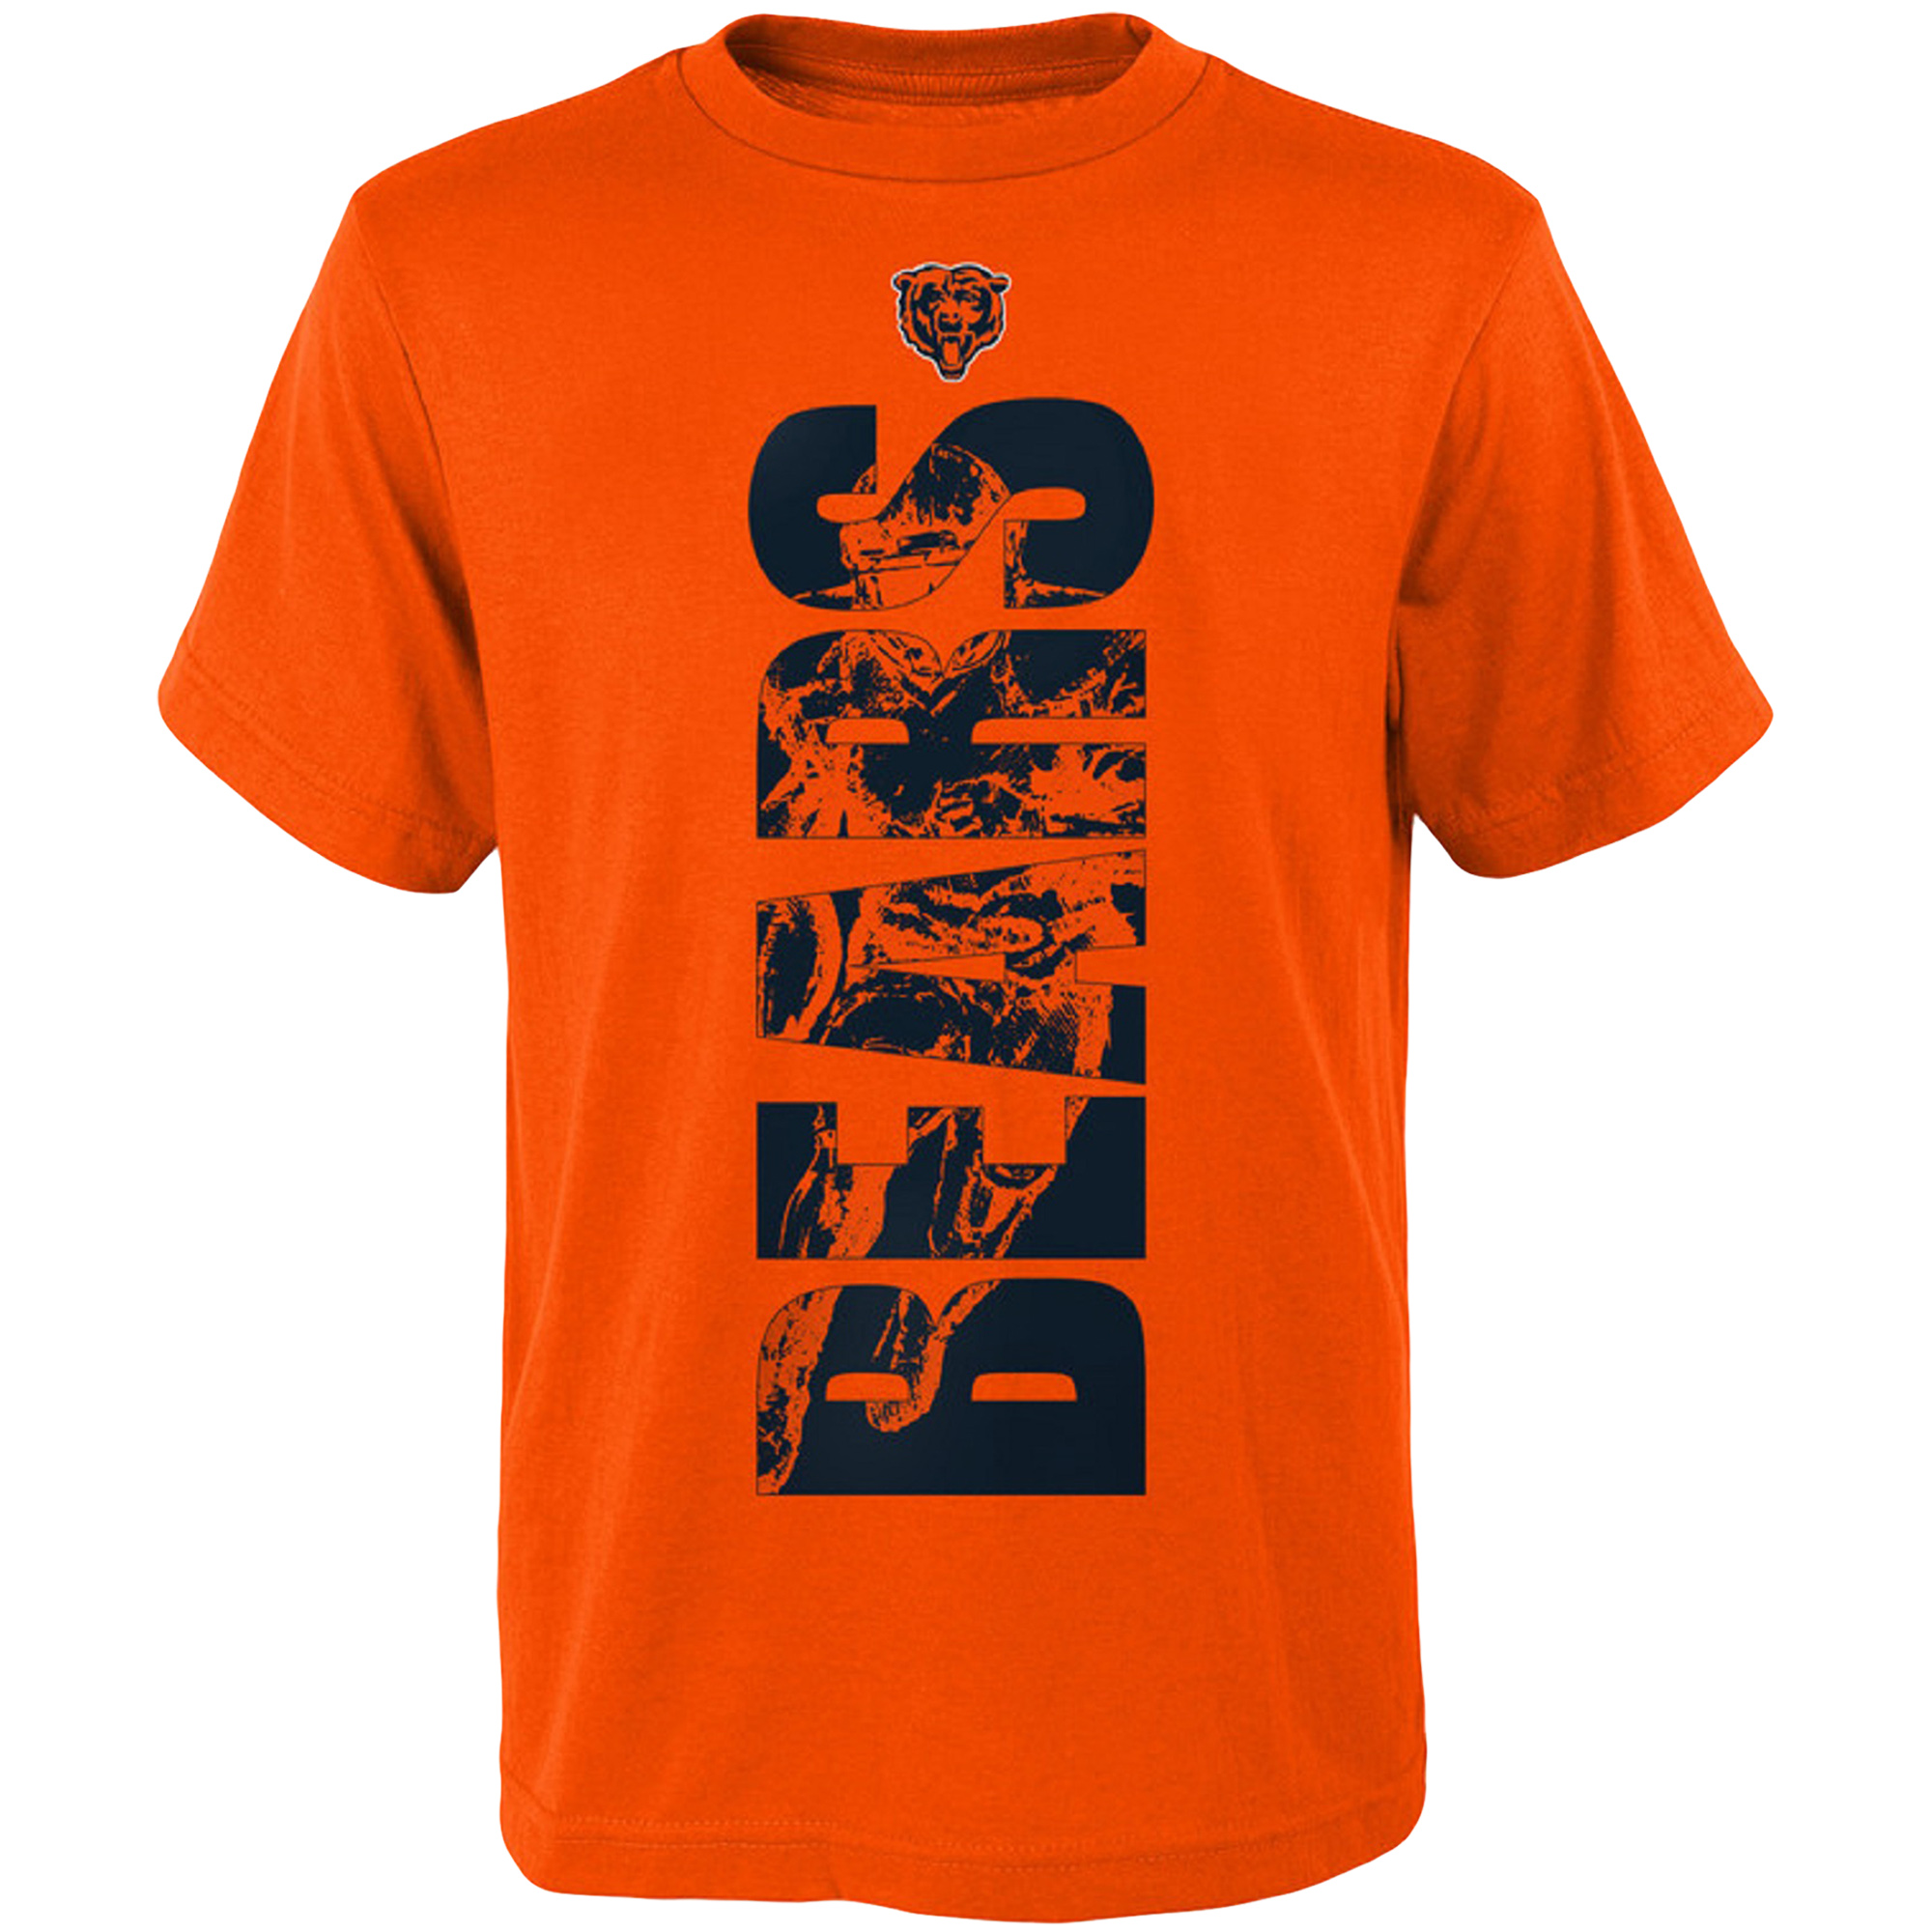 Youth Orange Chicago Bears Side T-Shirt